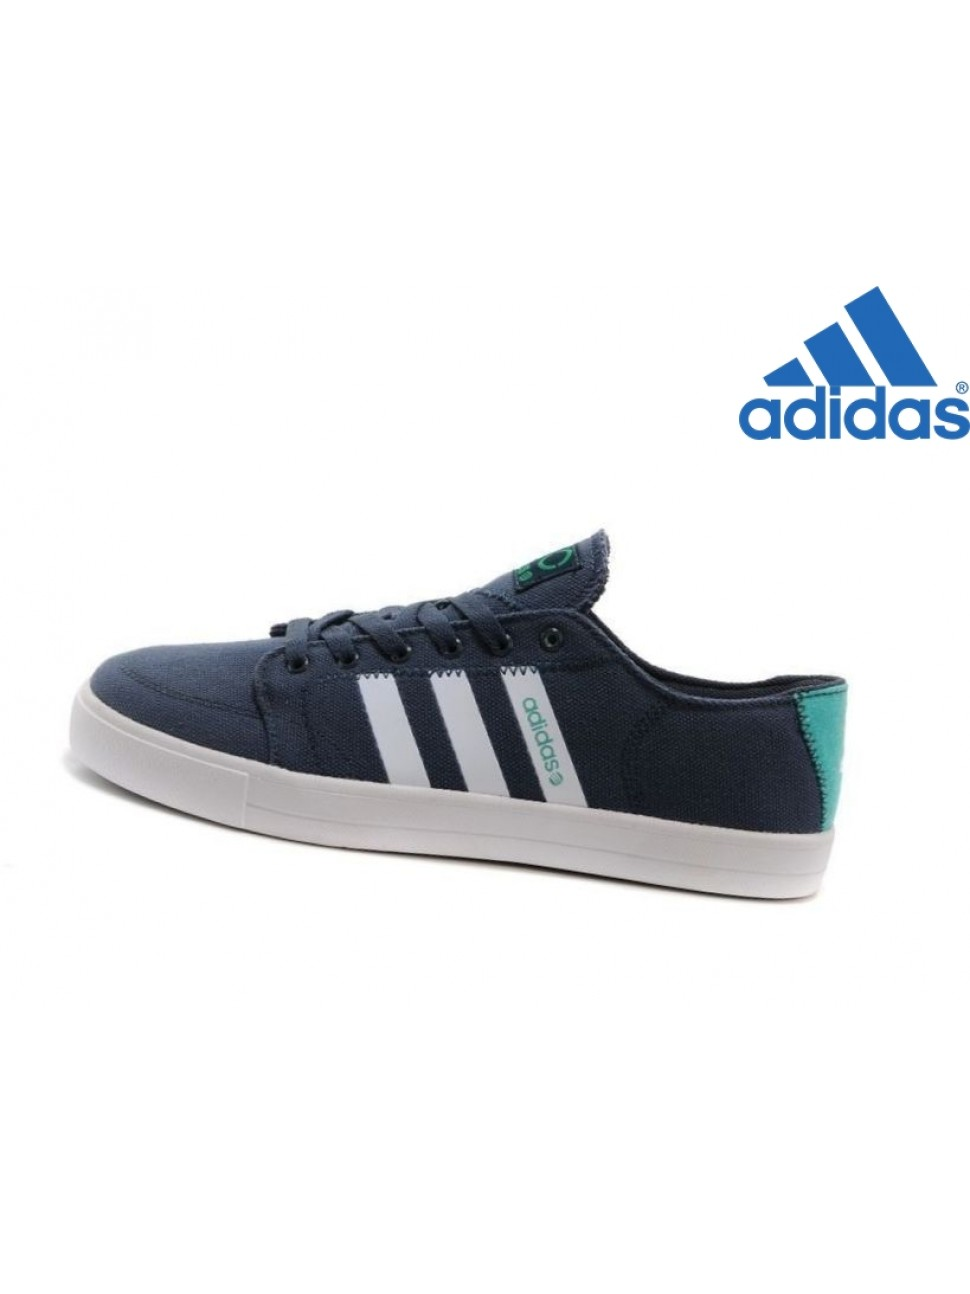 adidas neo blanche homme